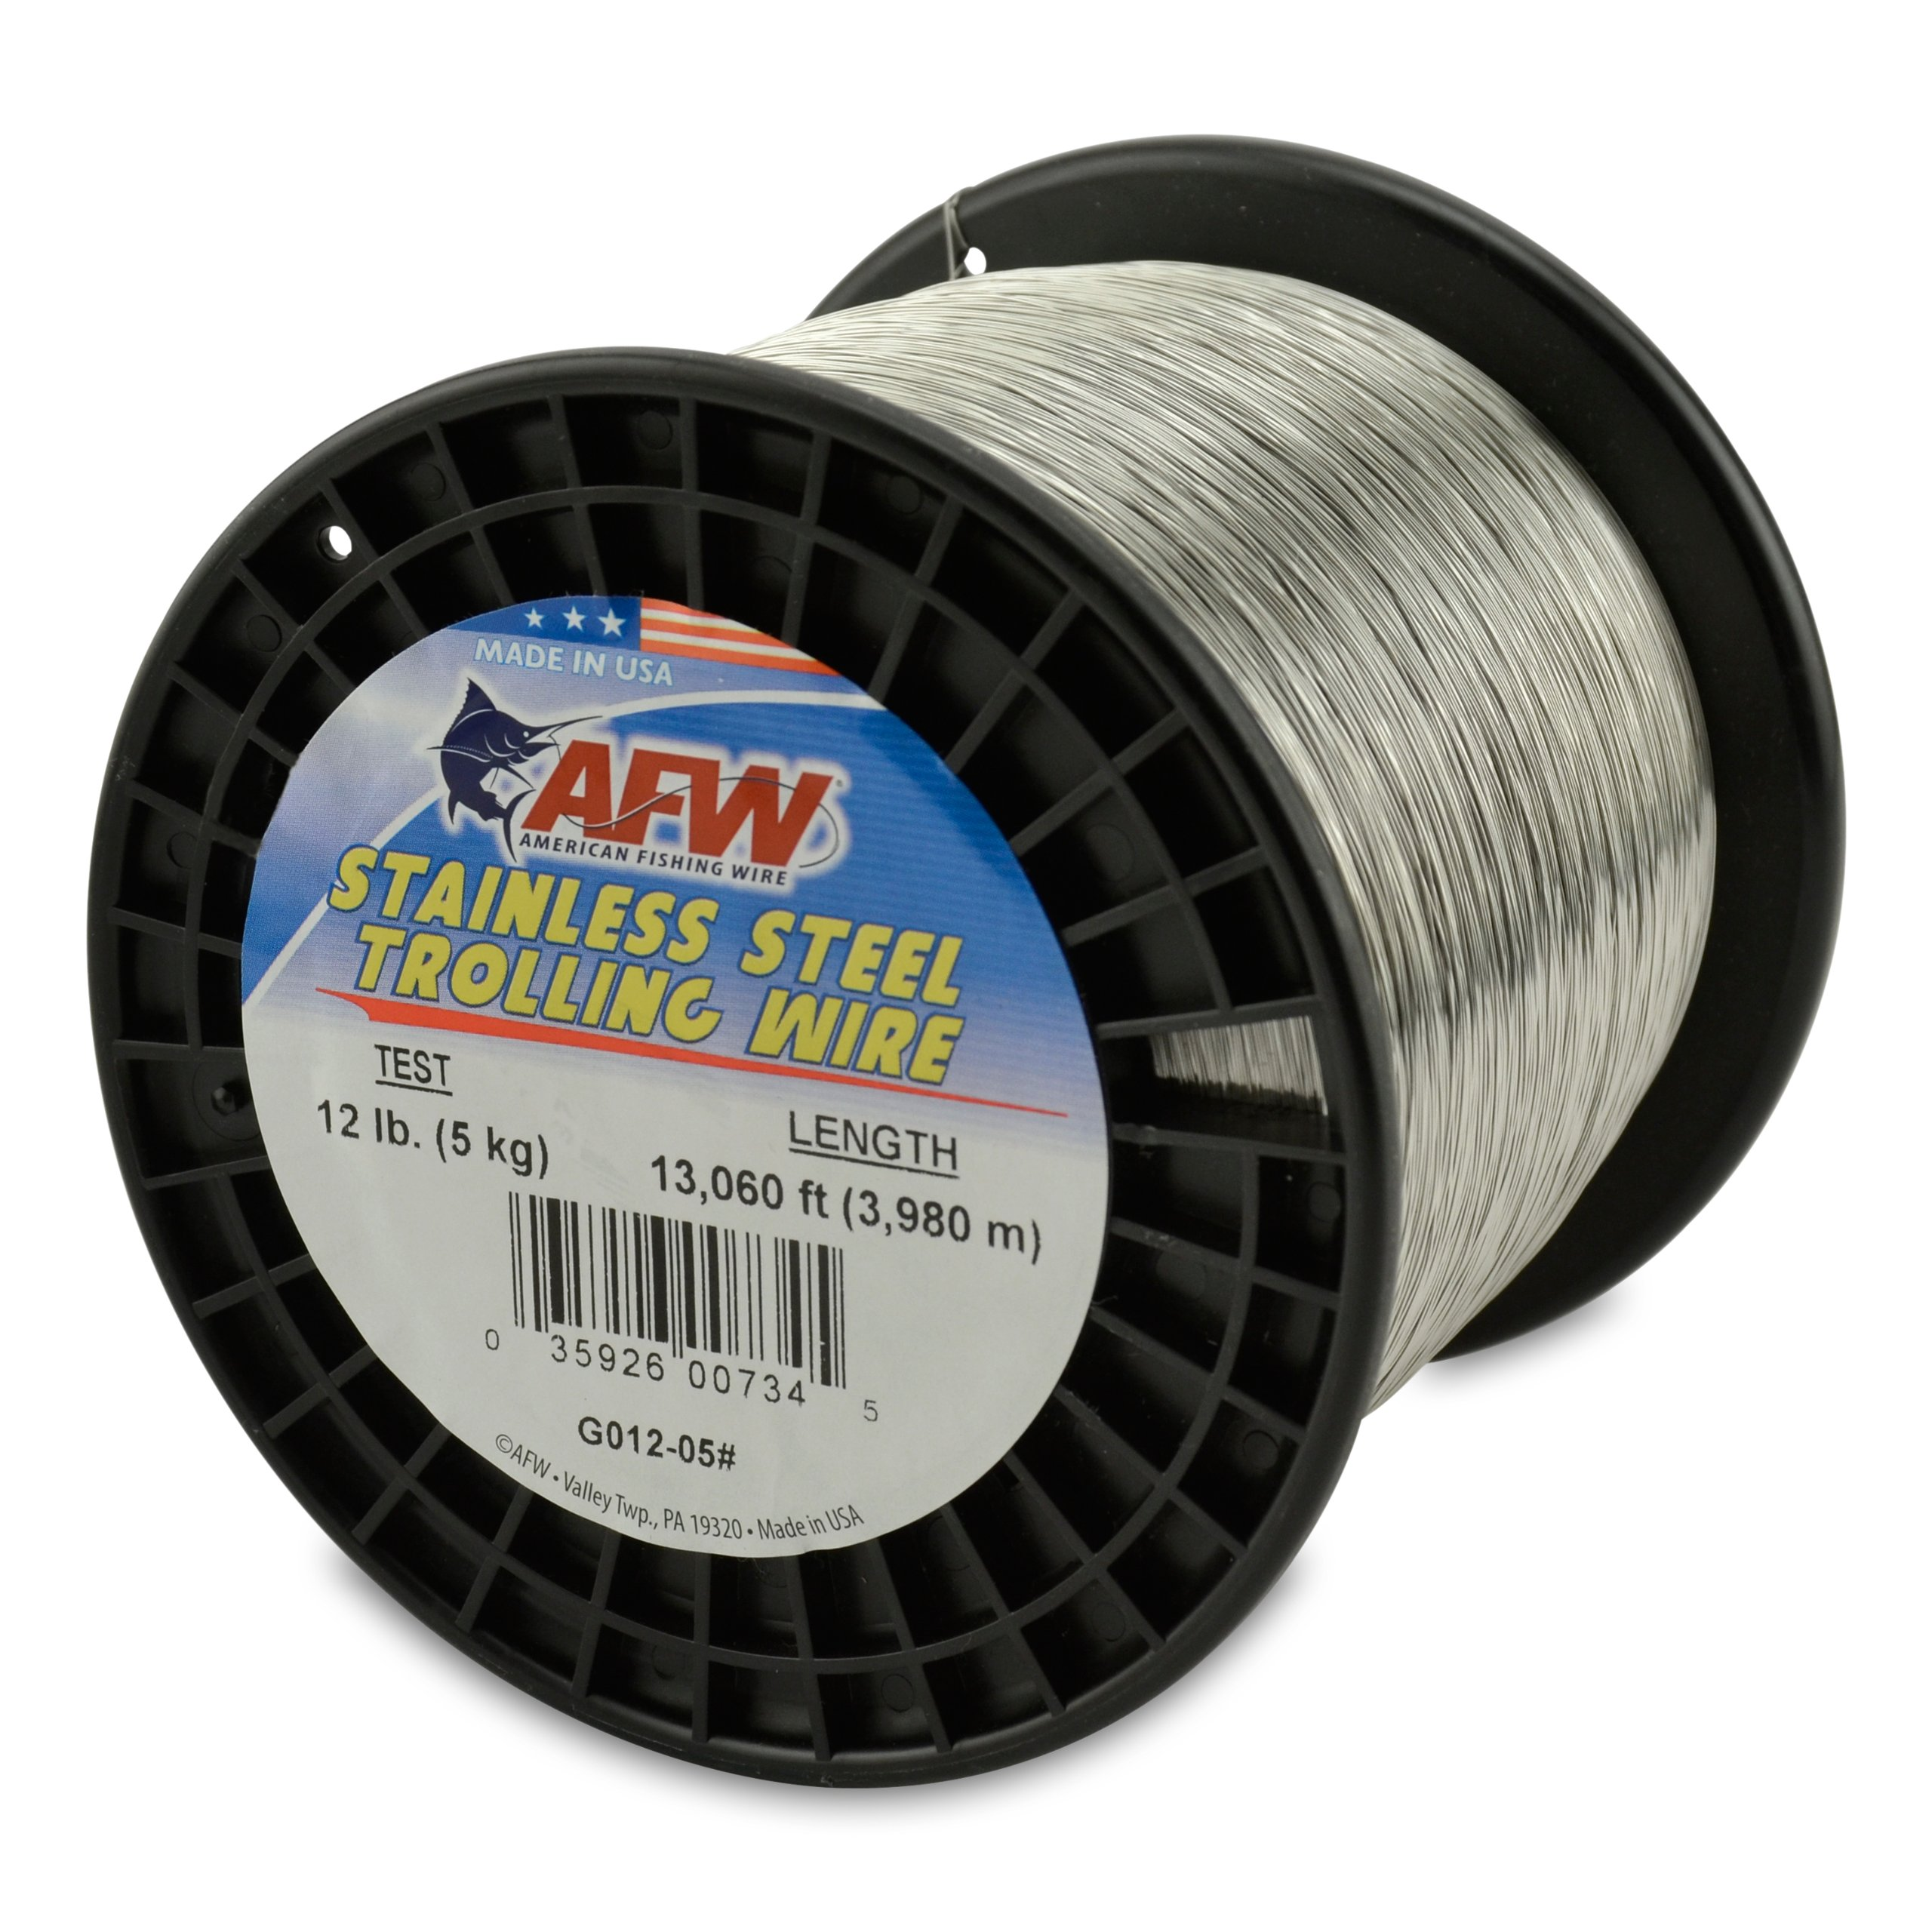 American Fishing Wire Stainless Steel Trolling Wire, 12-Pound Test/0.30mm Dia/3980m by American Fishing Wire